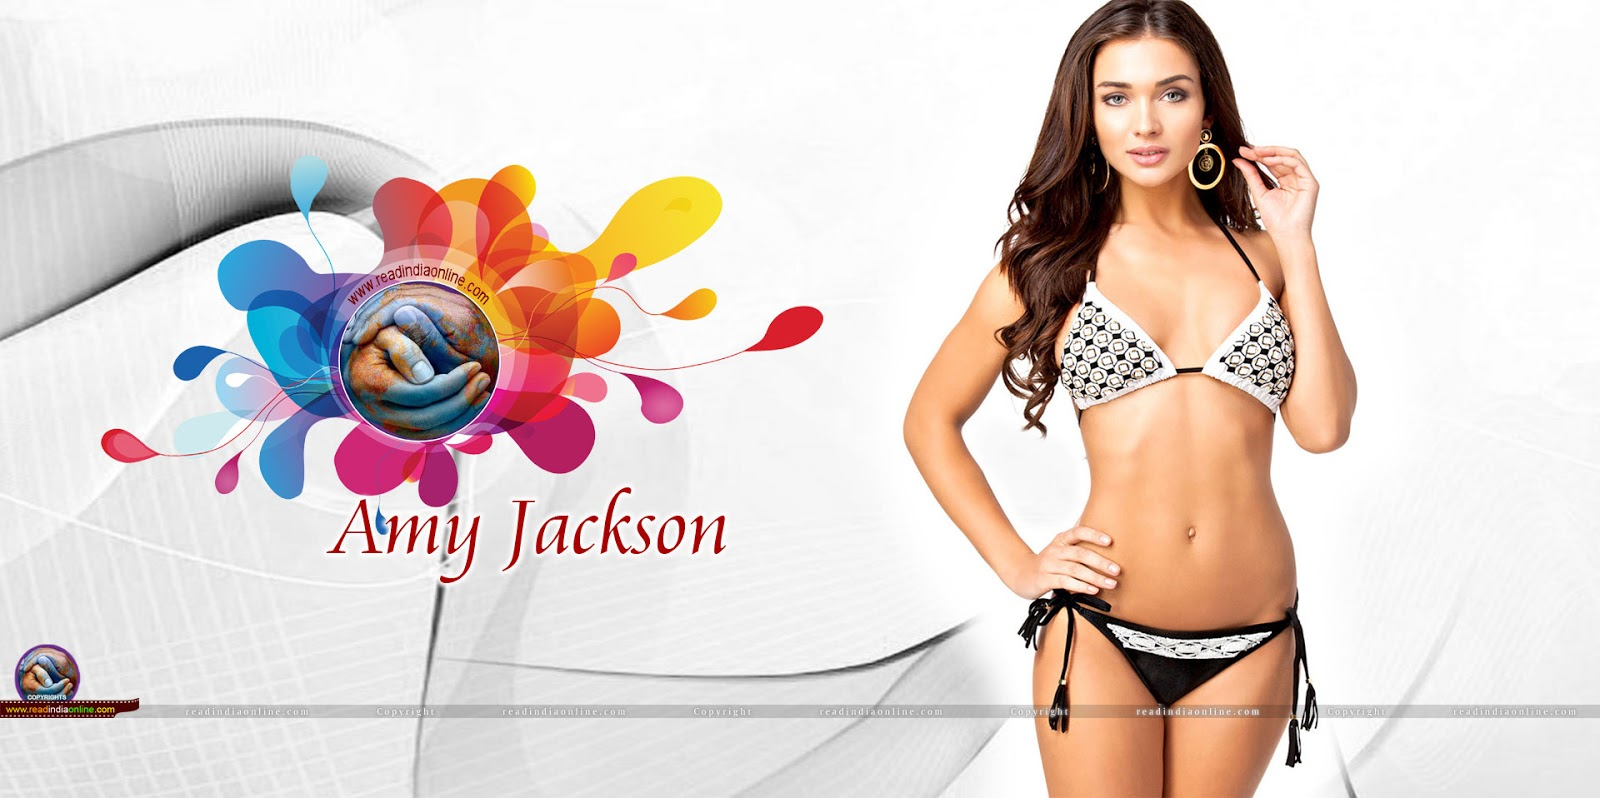 Amy Jackson Sex Com hot amy jackson: amy jackson sexy